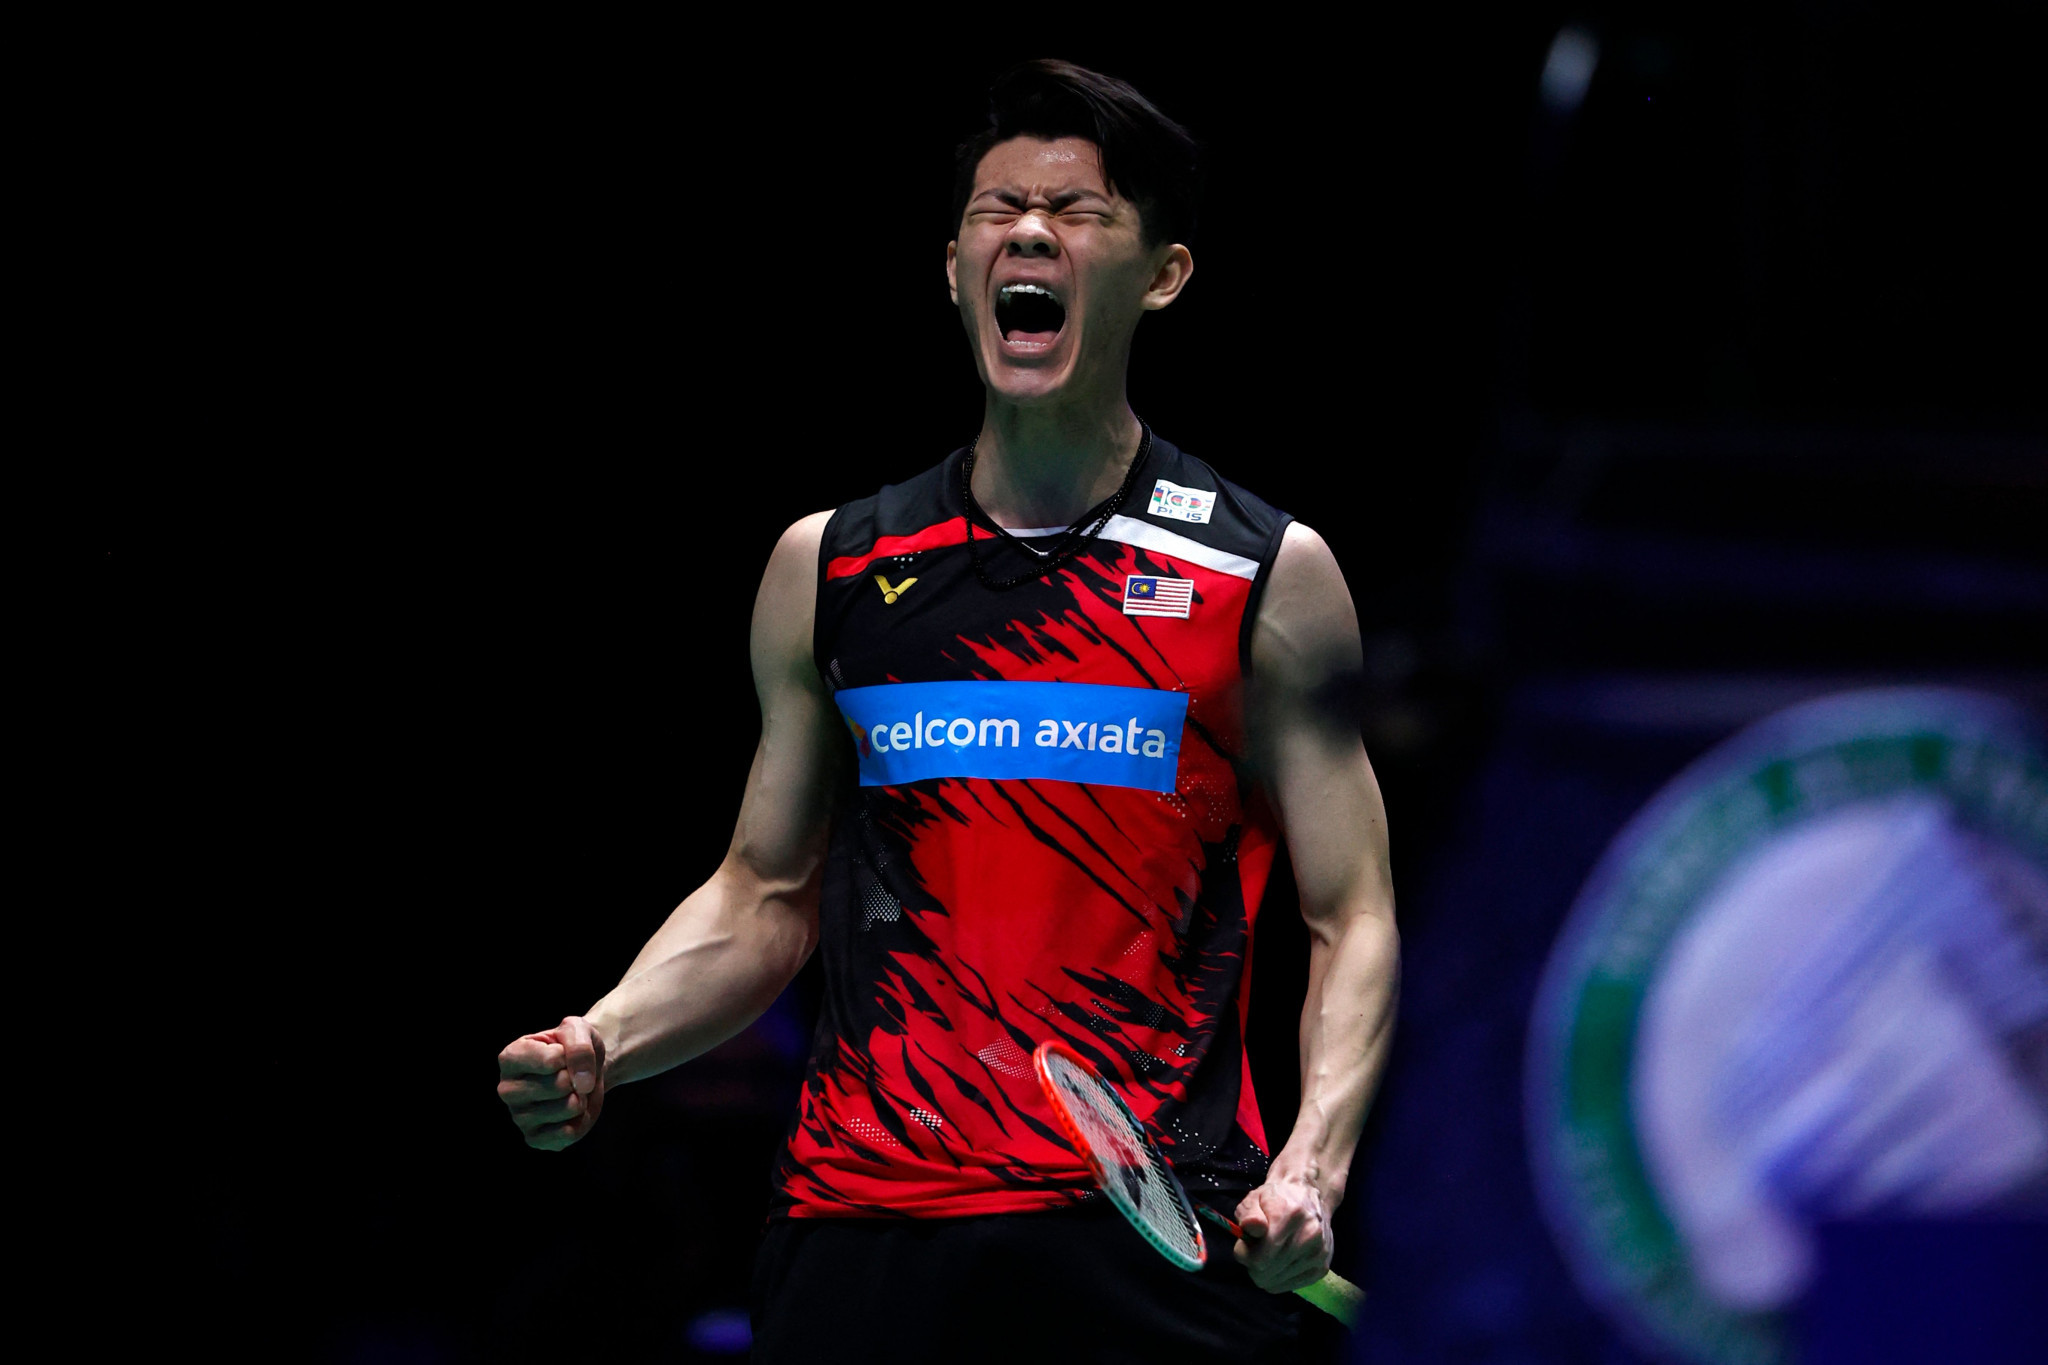 Lee beats Axelsen in thriller to win men's singles crown at All England Open Badminton Championships